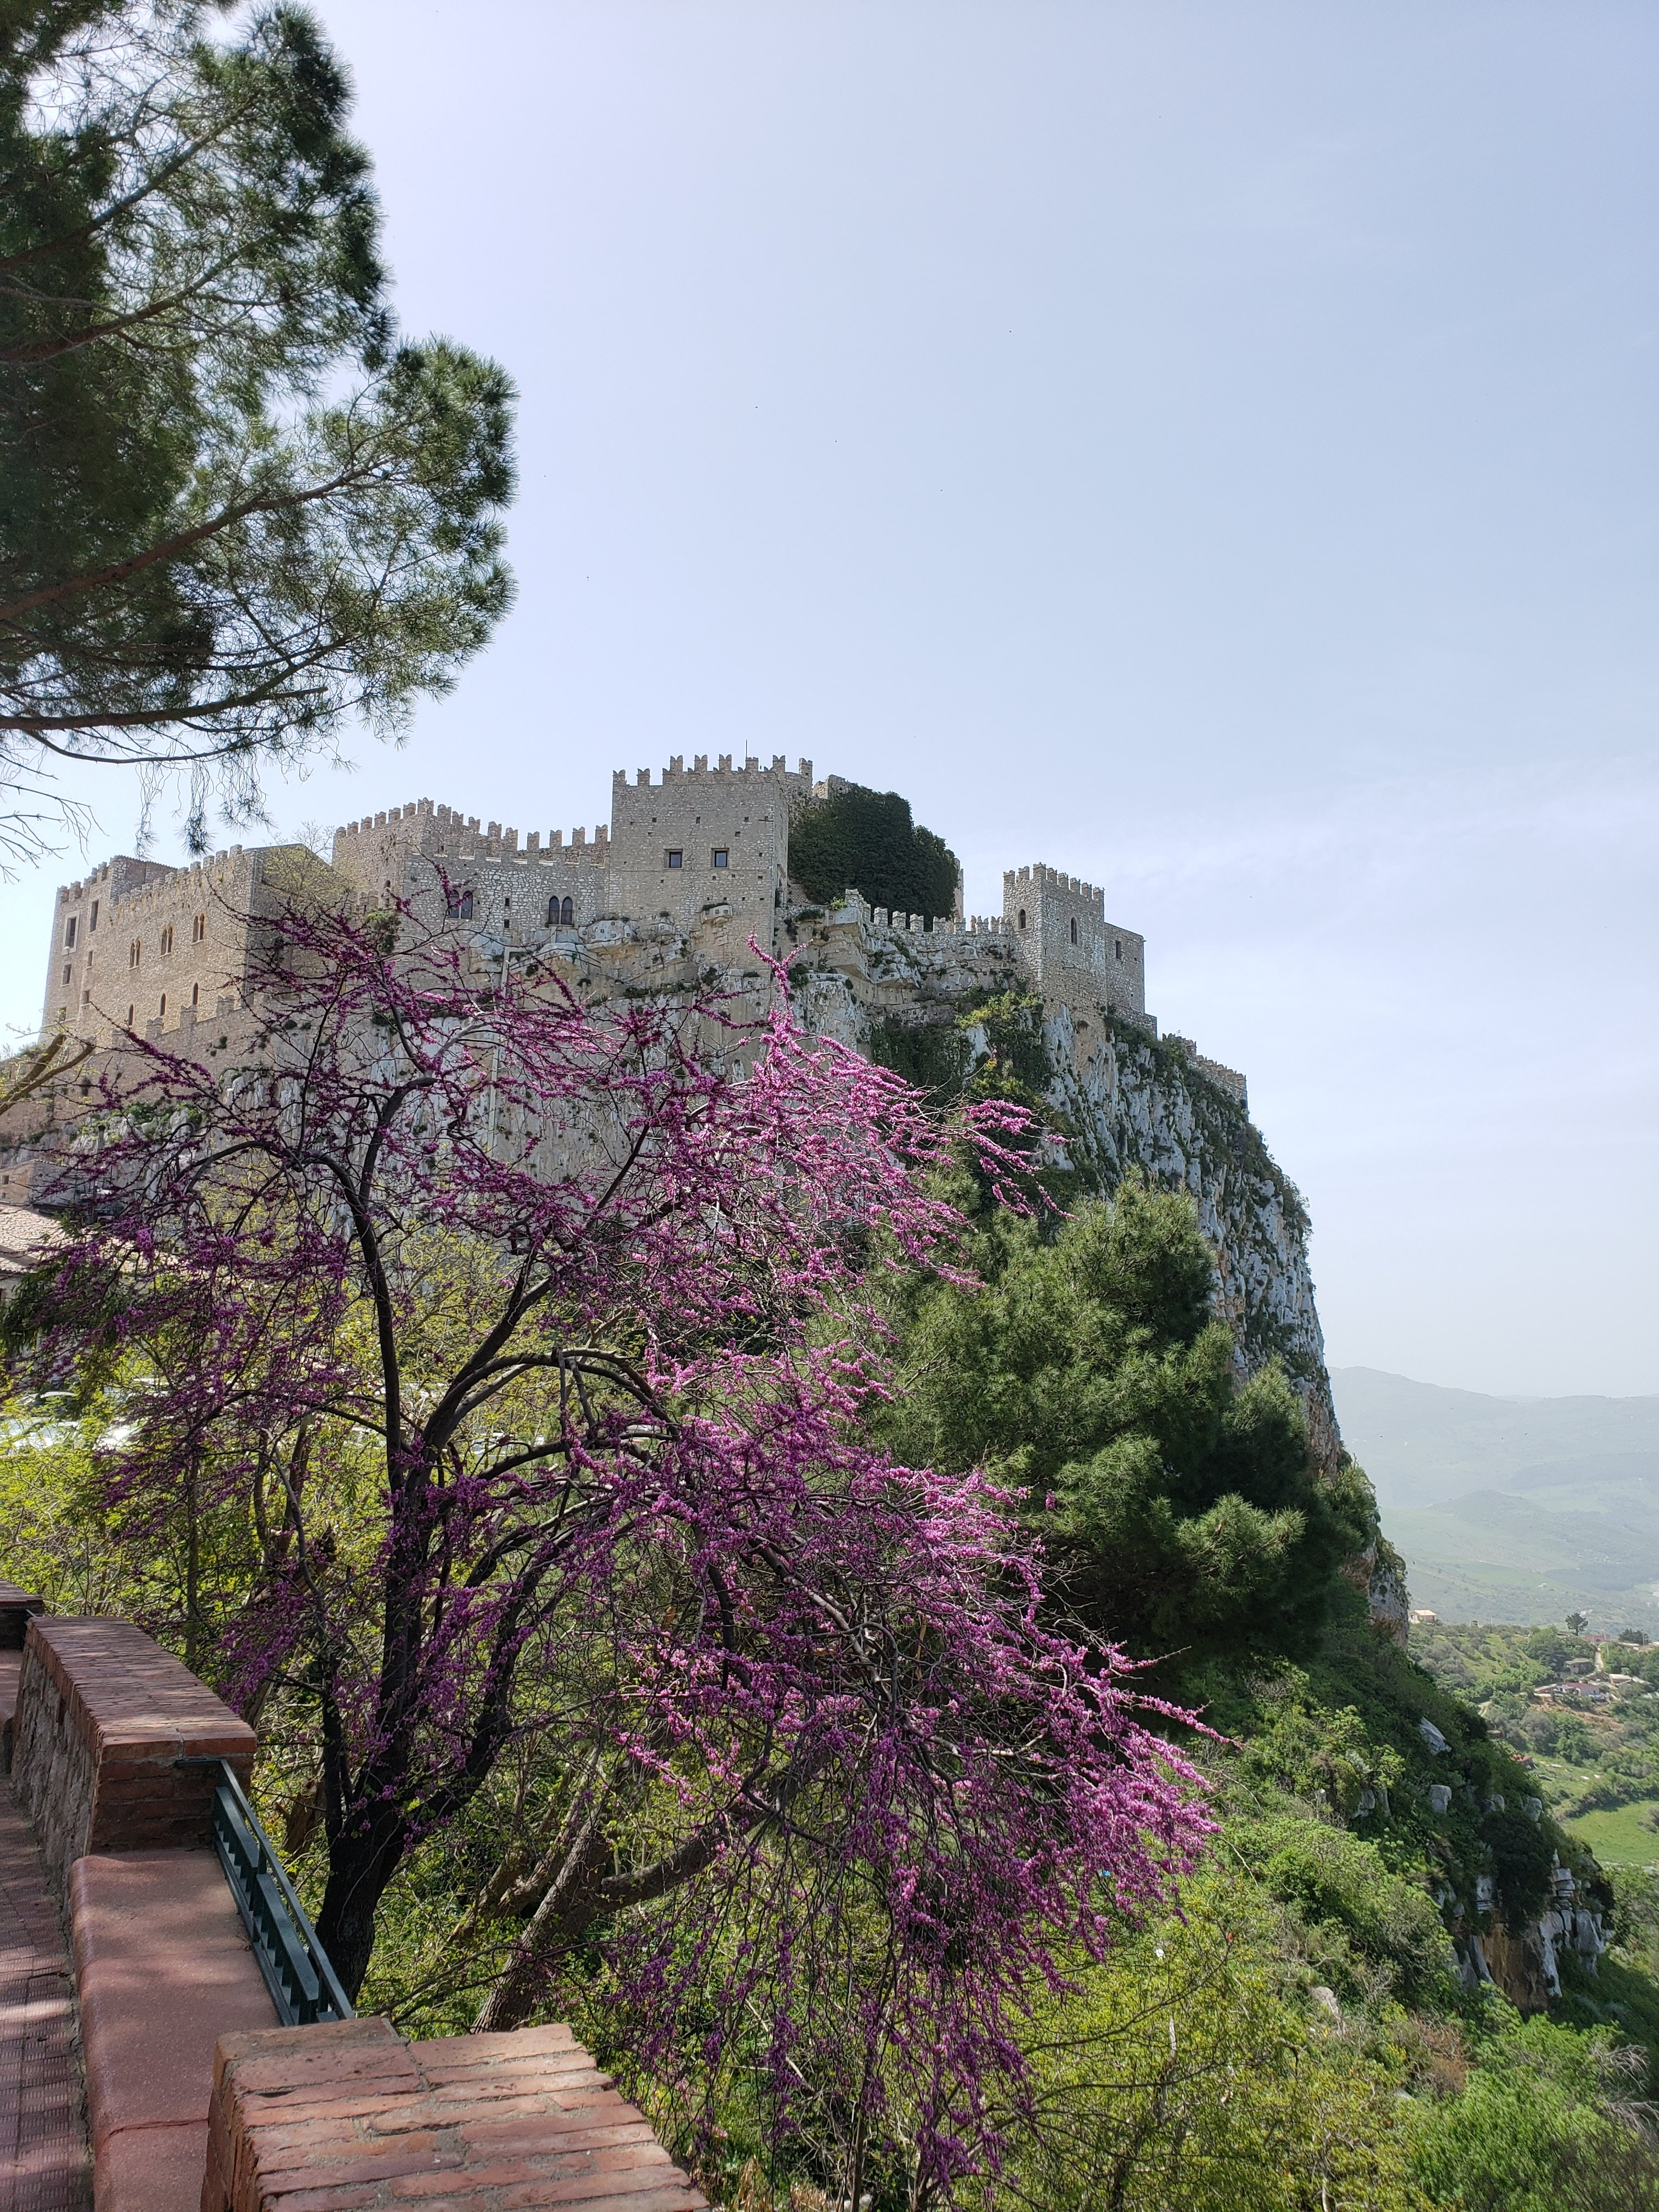 52 Reasons to Love Sicily   #21. Castles and Their Stories